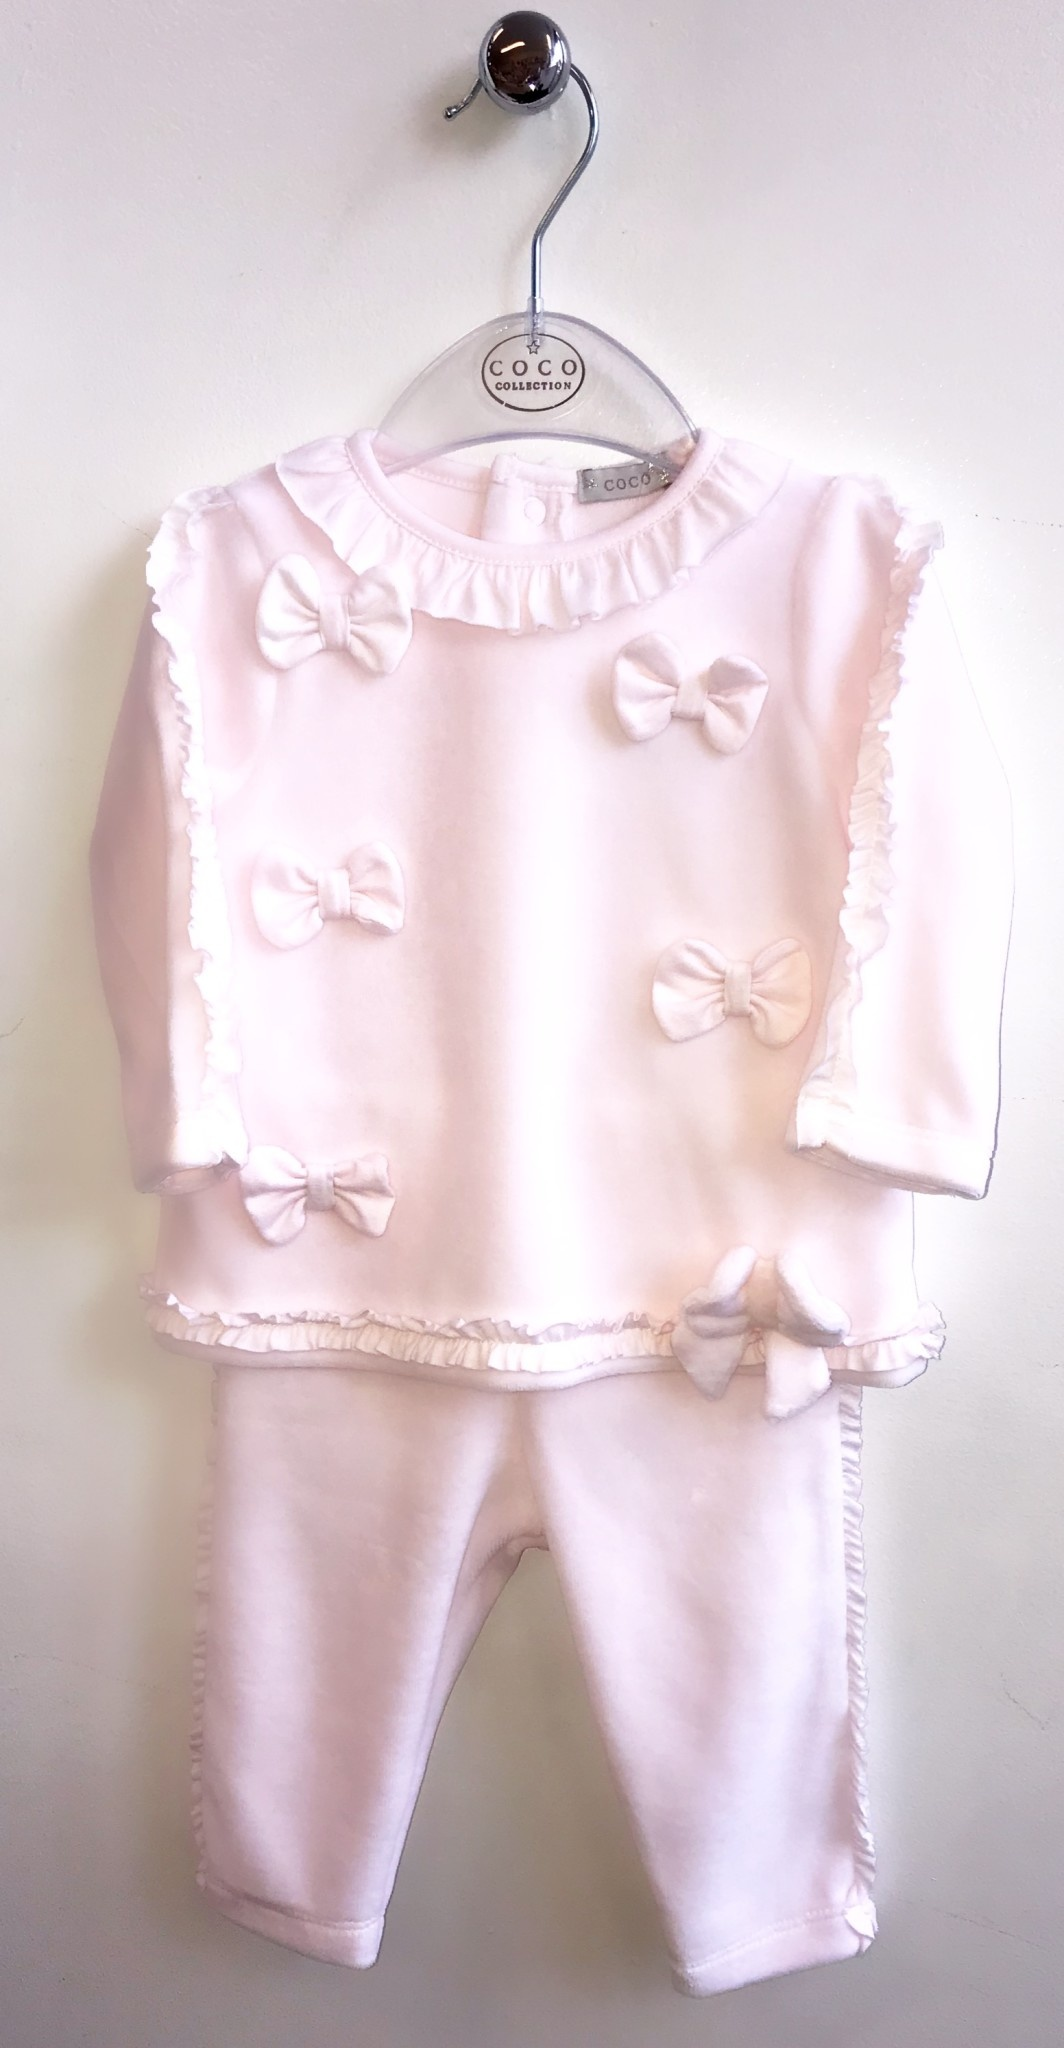 Coco Collection CoCo pink Velour Two Piece with Bow Details